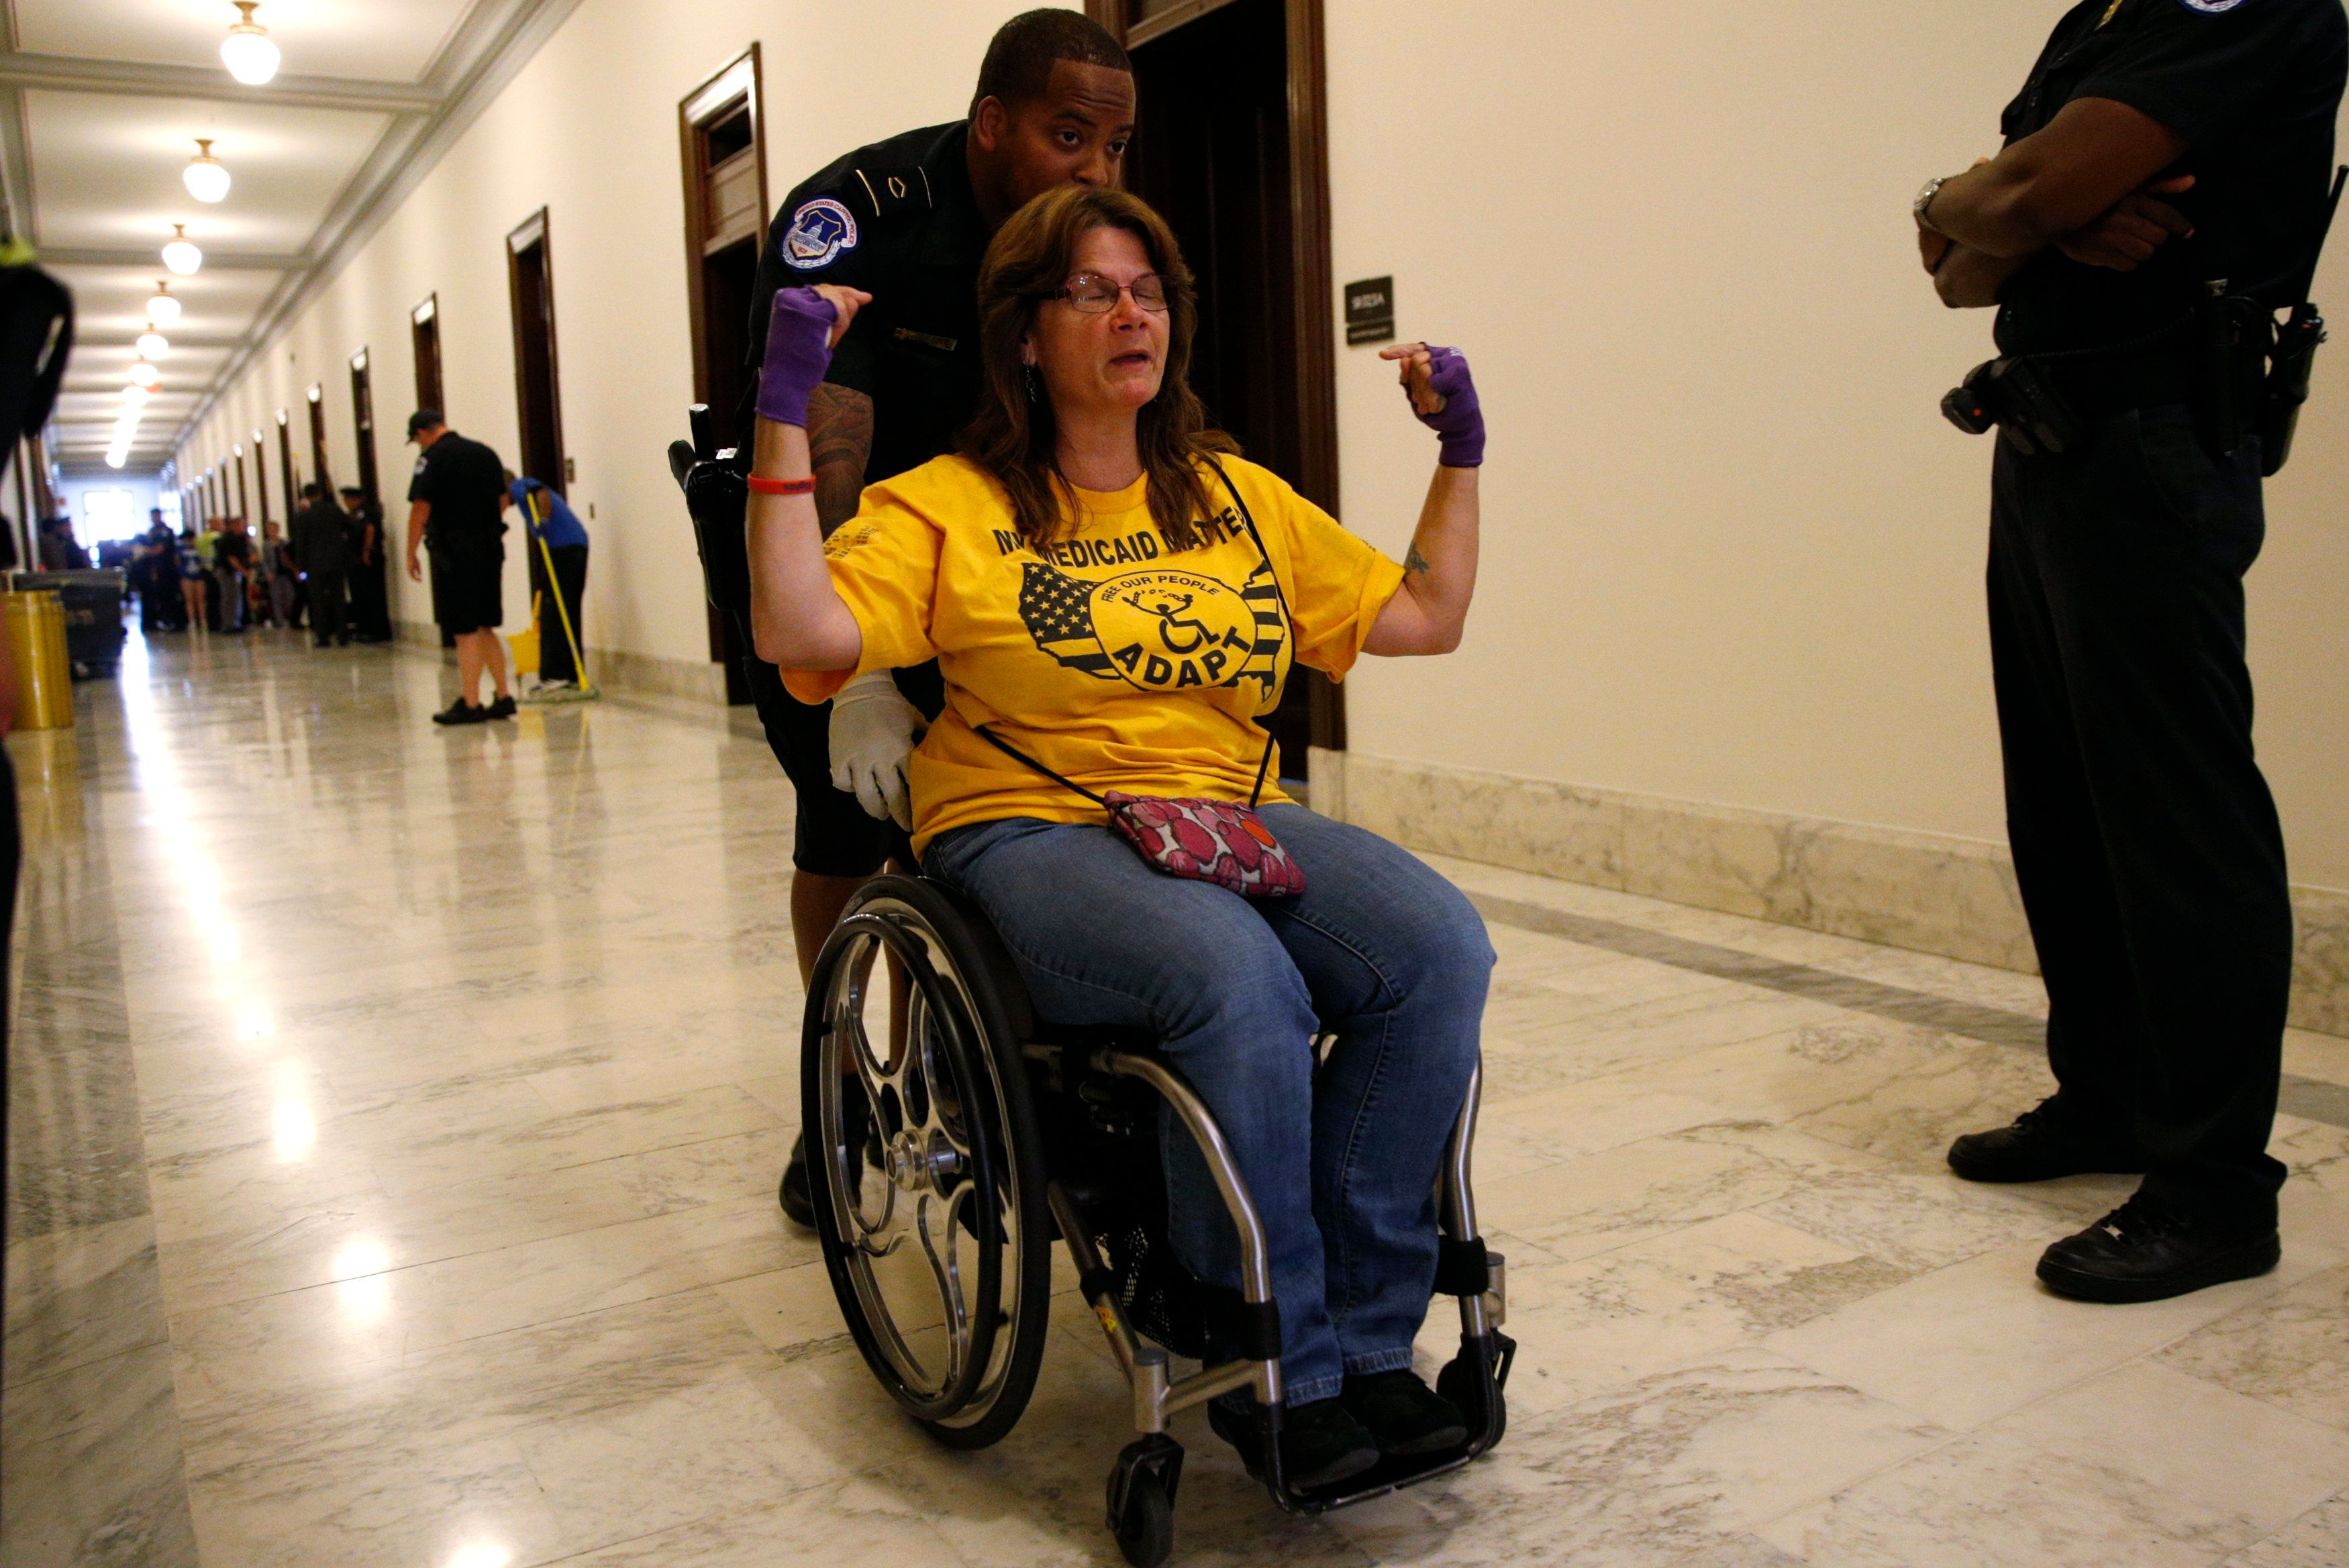 """A protester calling for """"no cuts to Medicaid"""" is escorted away by police after being arrested during a demonstration outside"""